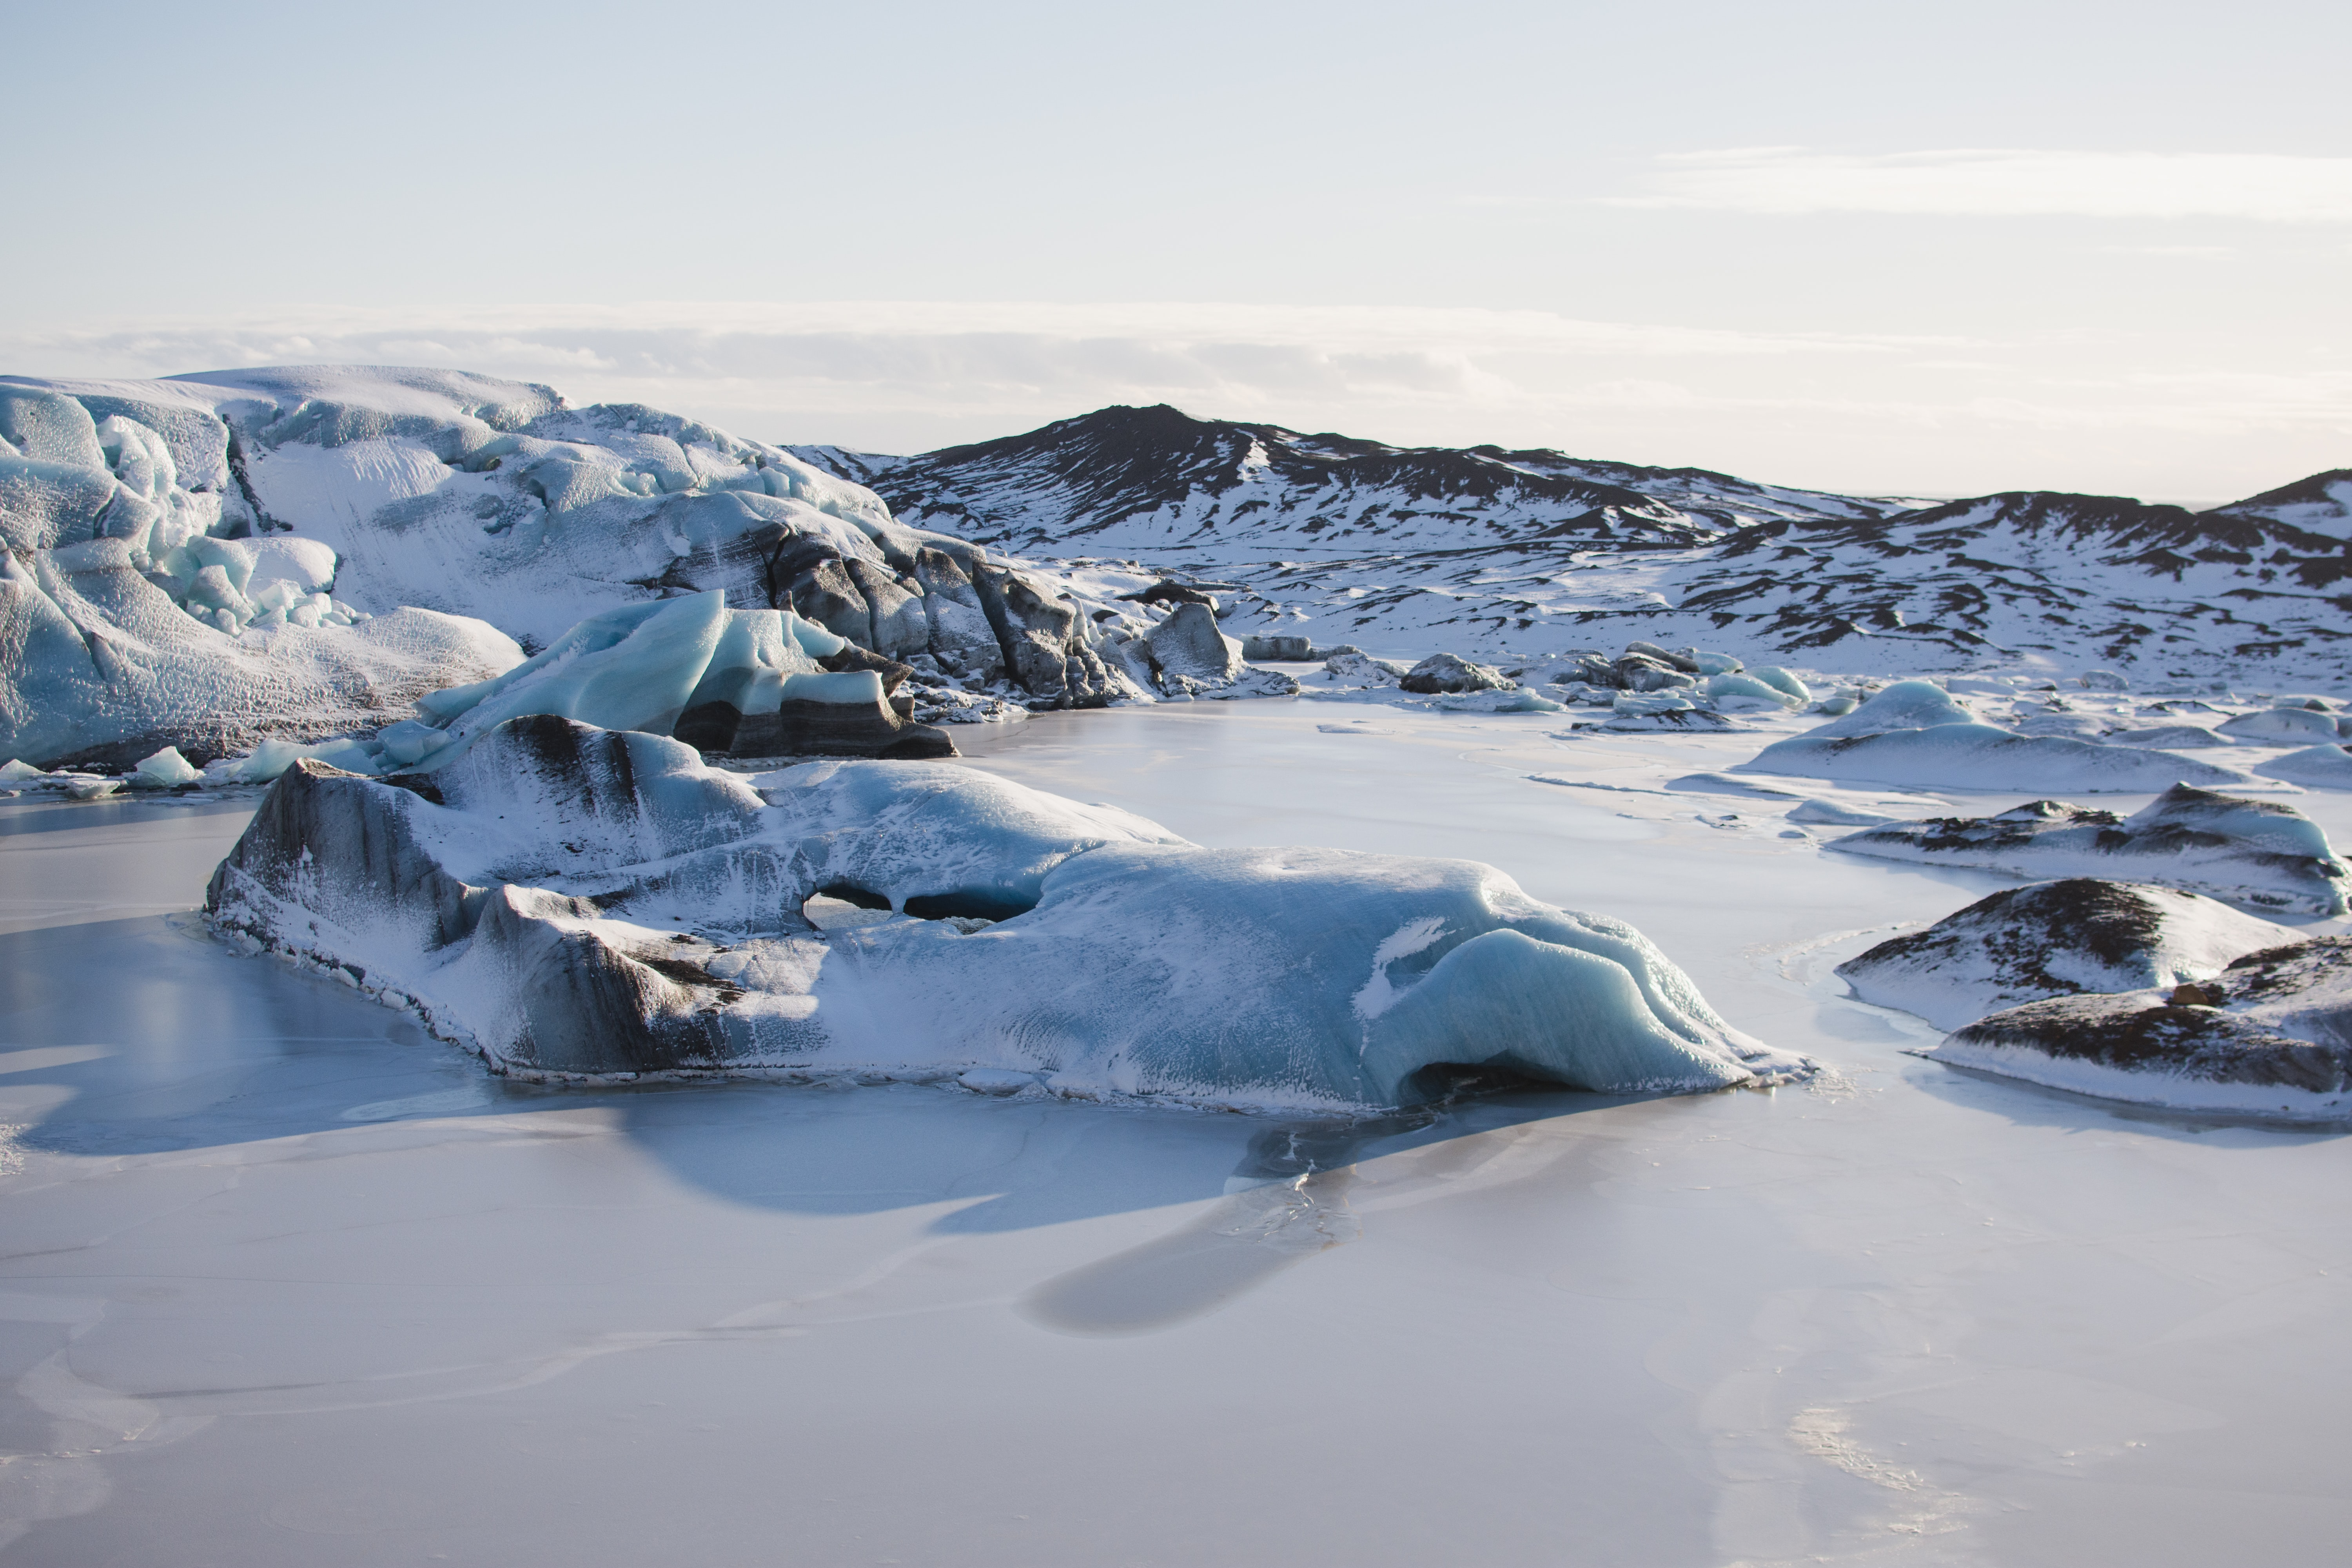 The surface of the glacier with a smooth frozen pool of water